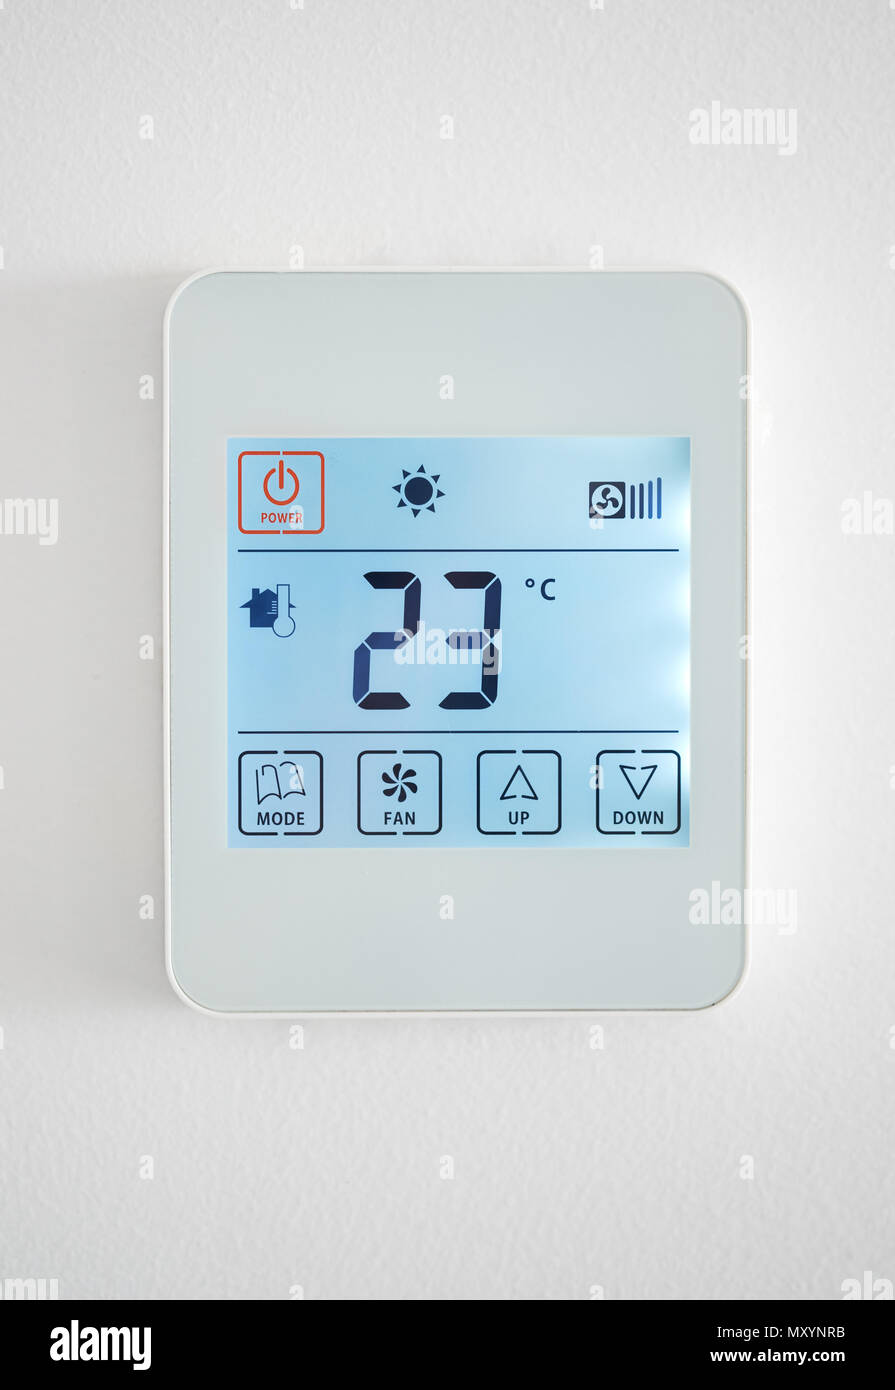 Climate control system on a white wall - Stock Image